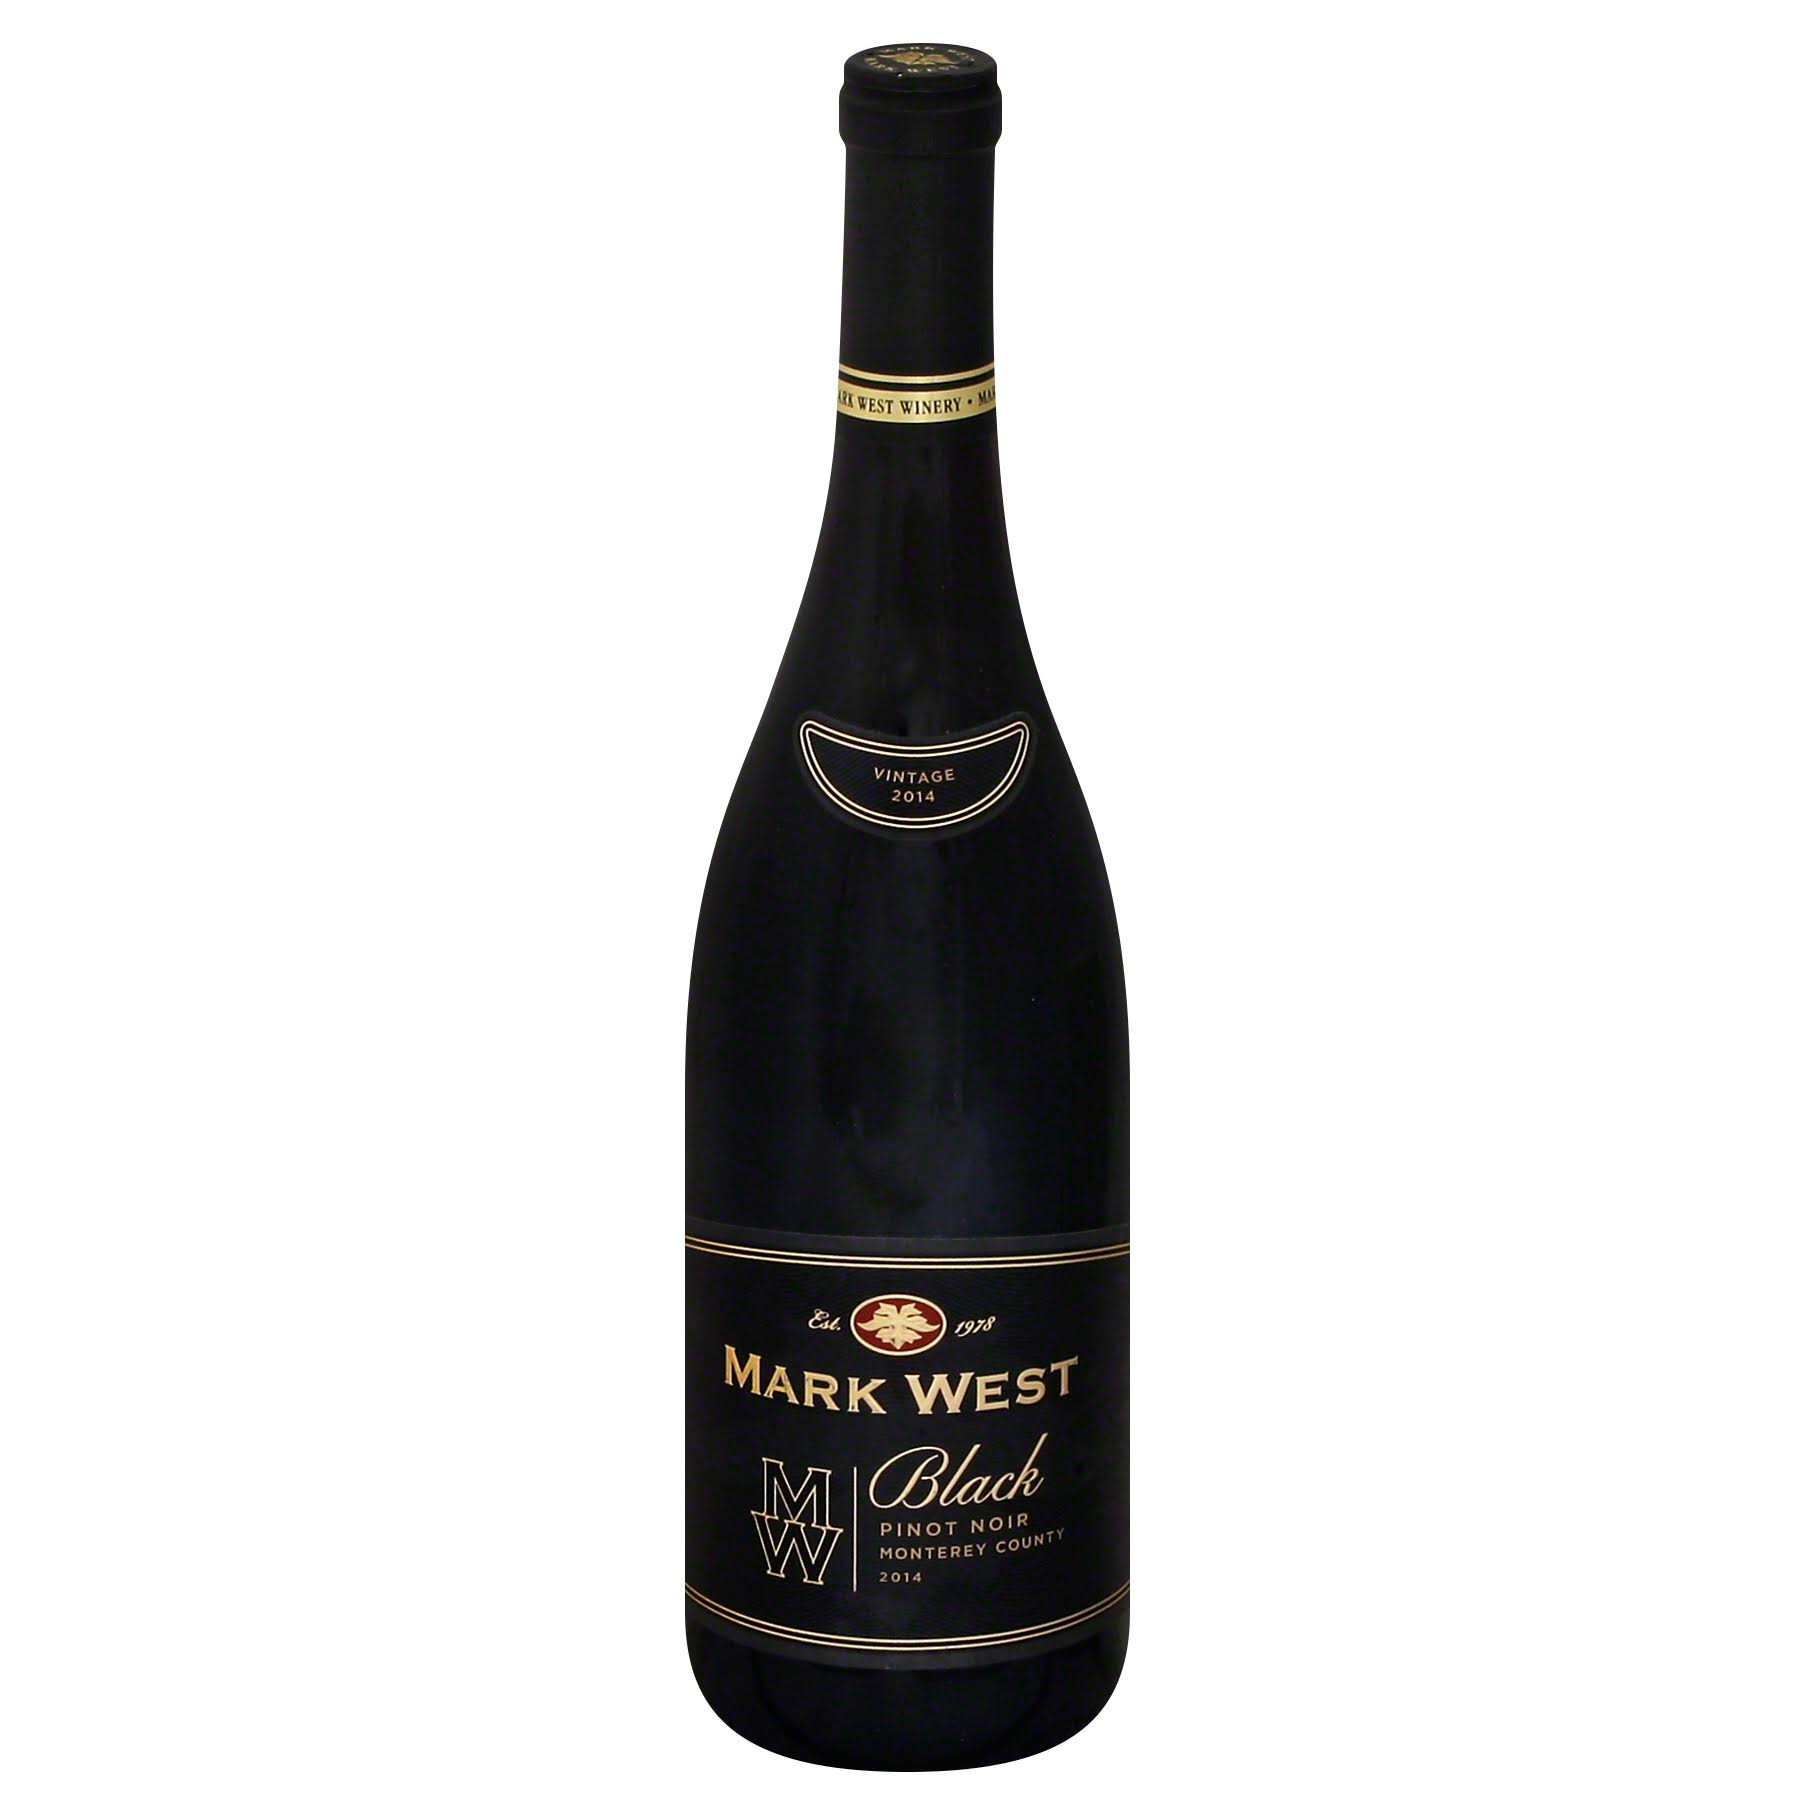 Mark West Pinot Noir, Black, Monterey County, 2014 - 750 ml